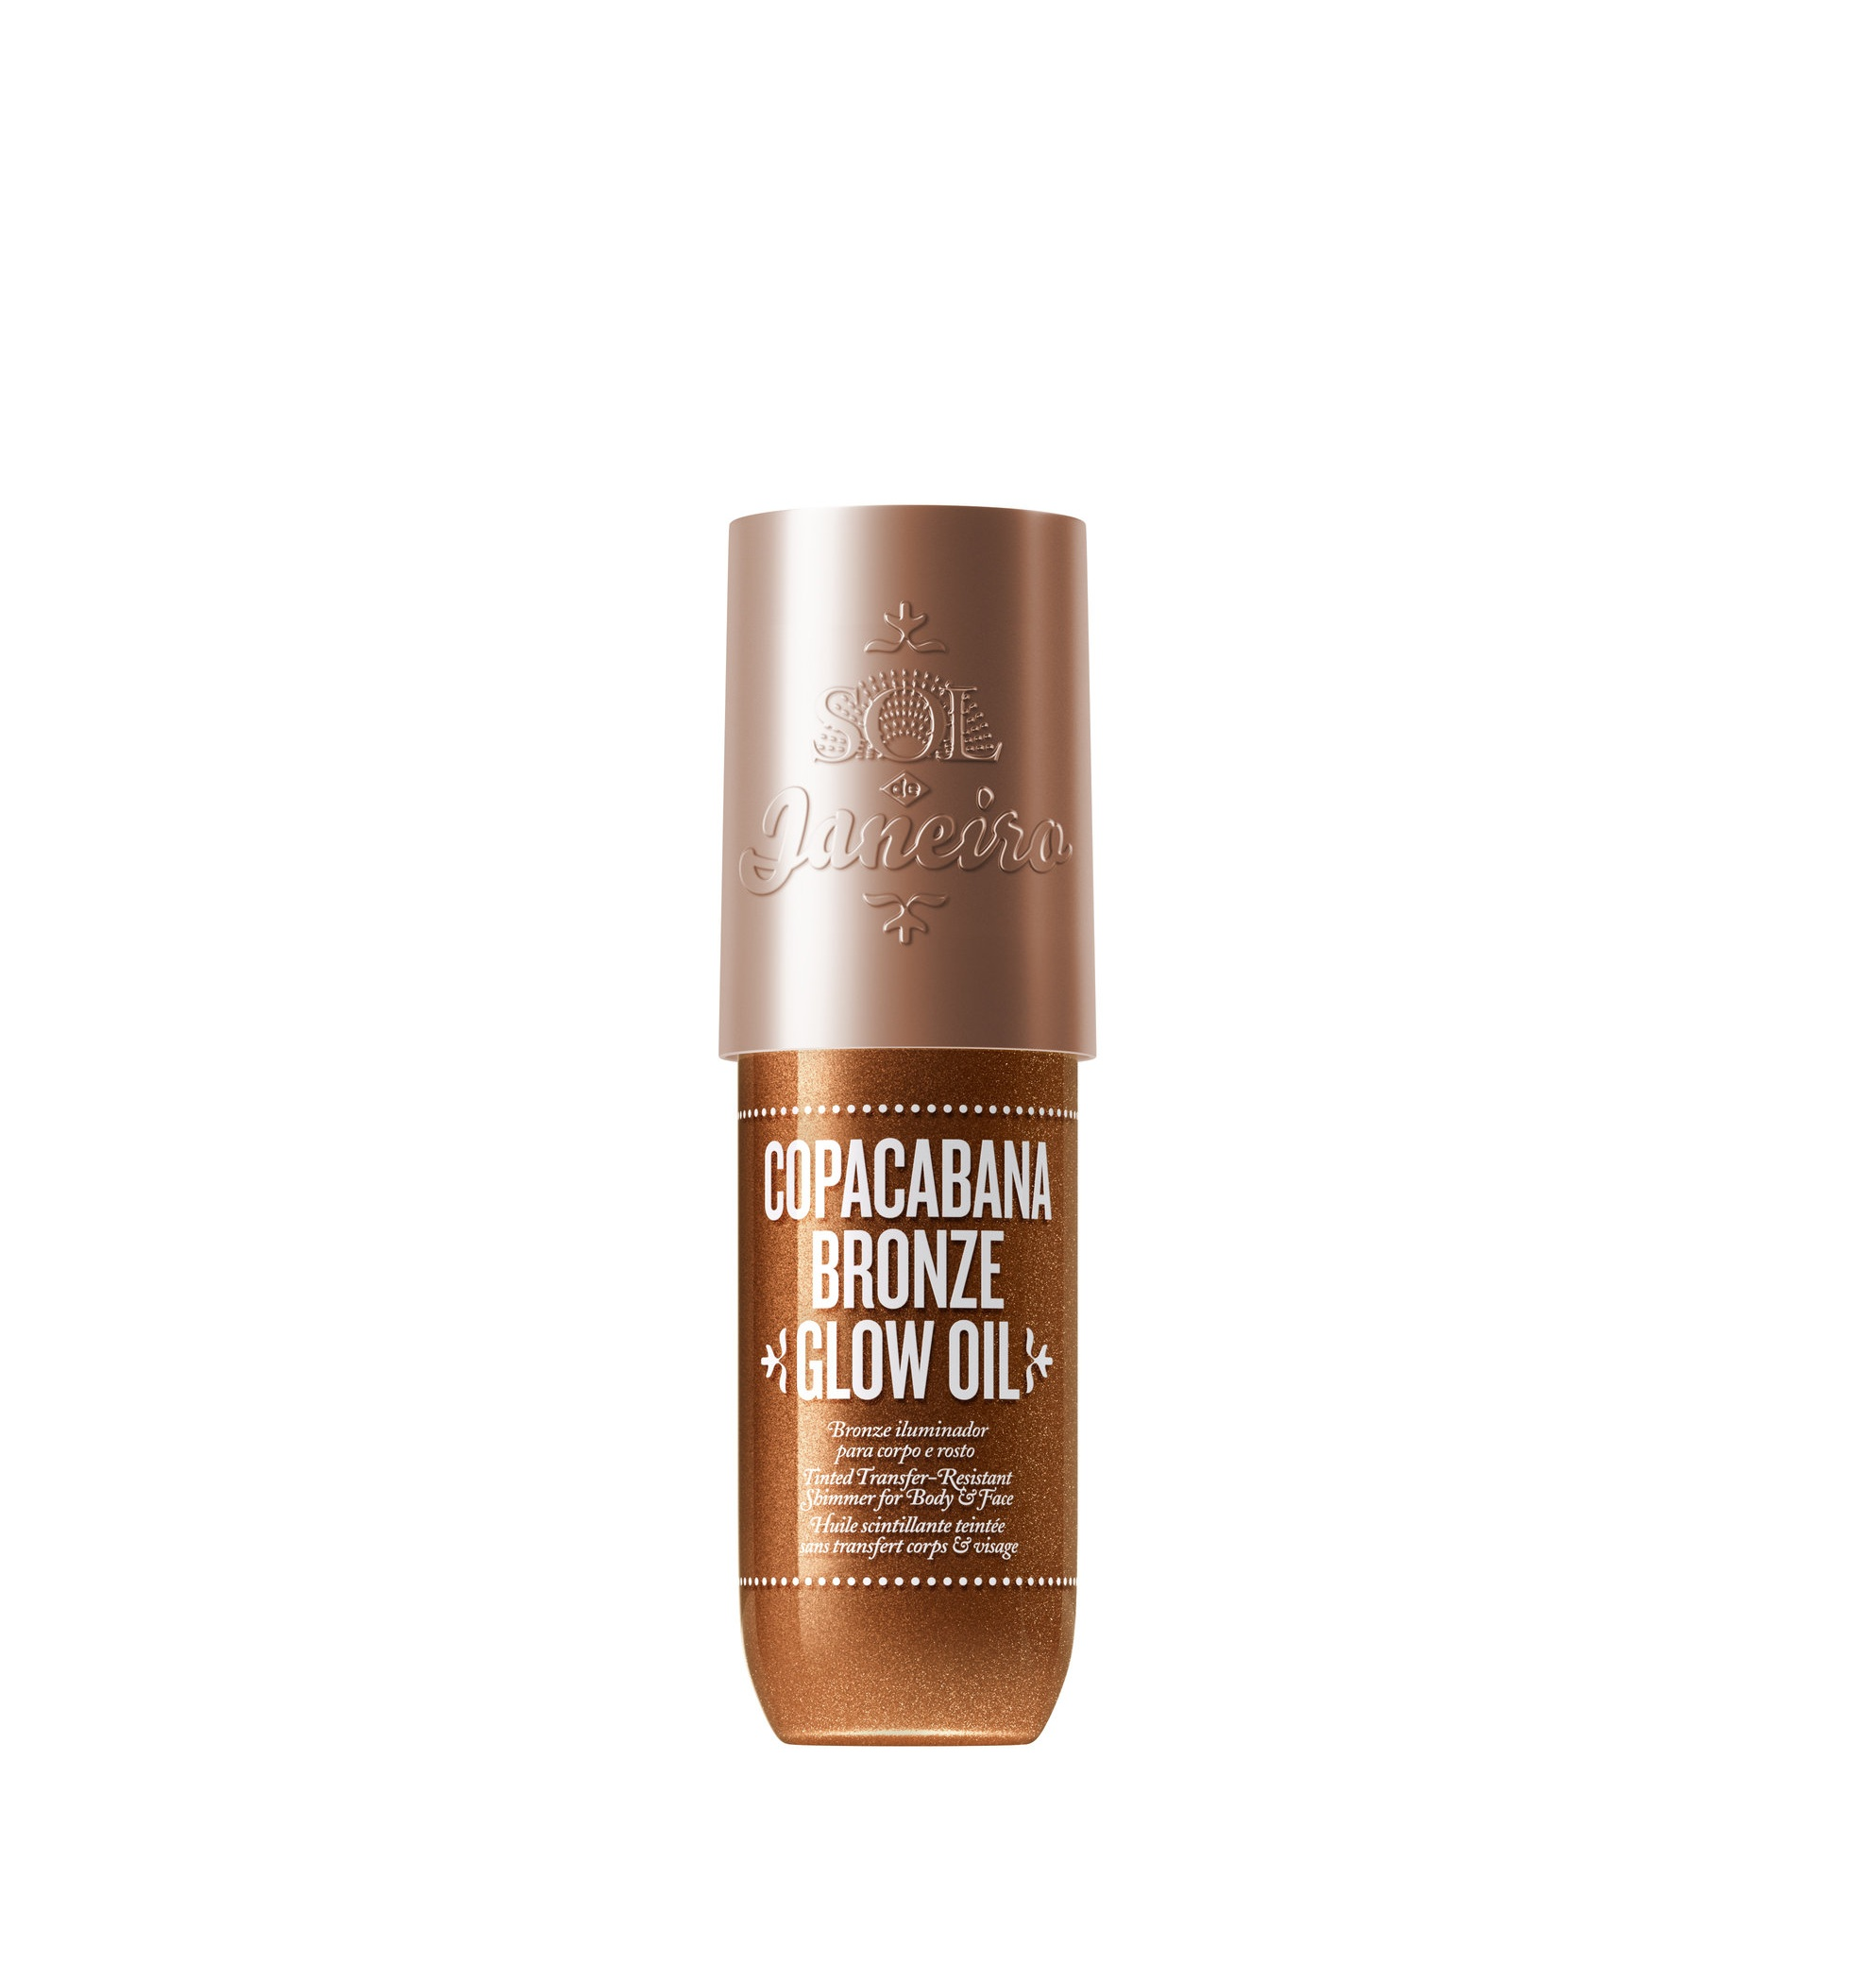 Copacabana Bronze Glow Oil, Sol de Janeiro available at    Cult Beauty   , £35